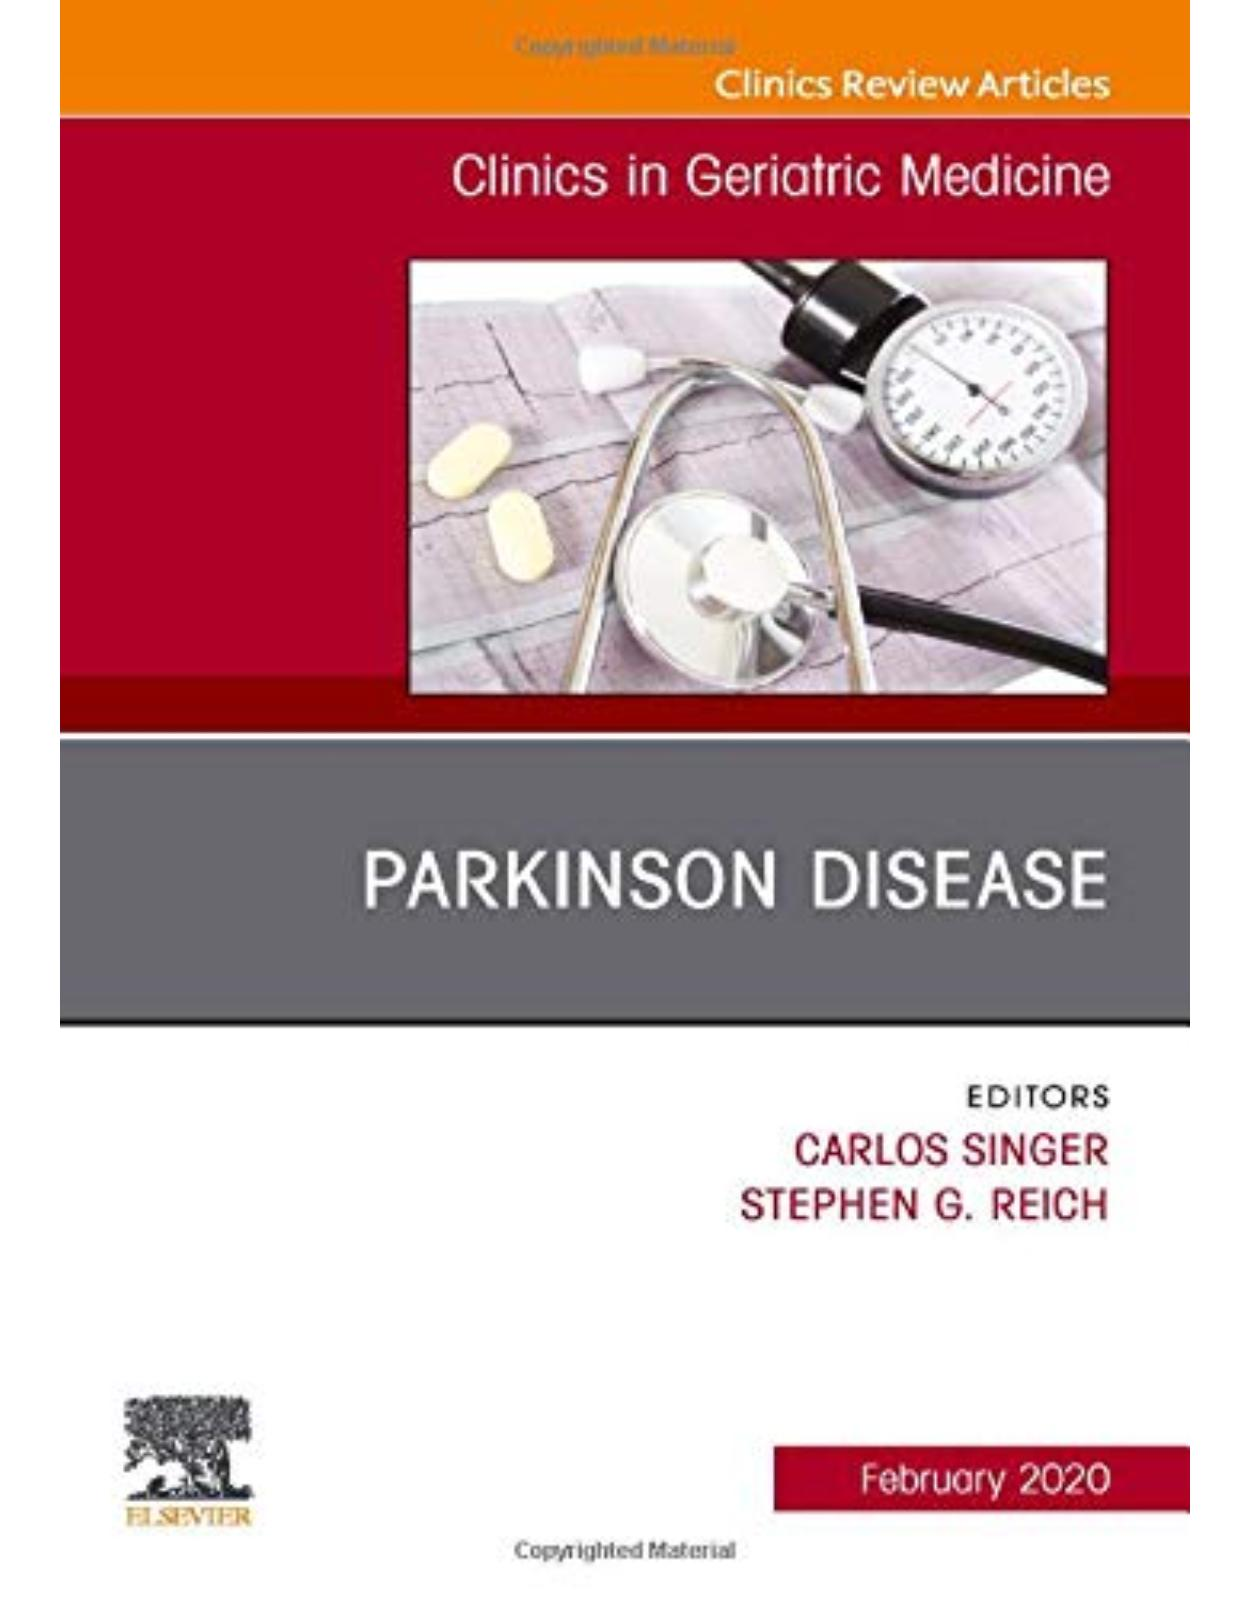 Parkinson Disease,An Issue of Clinics in Geriatric Medicine (Volume 36-1)